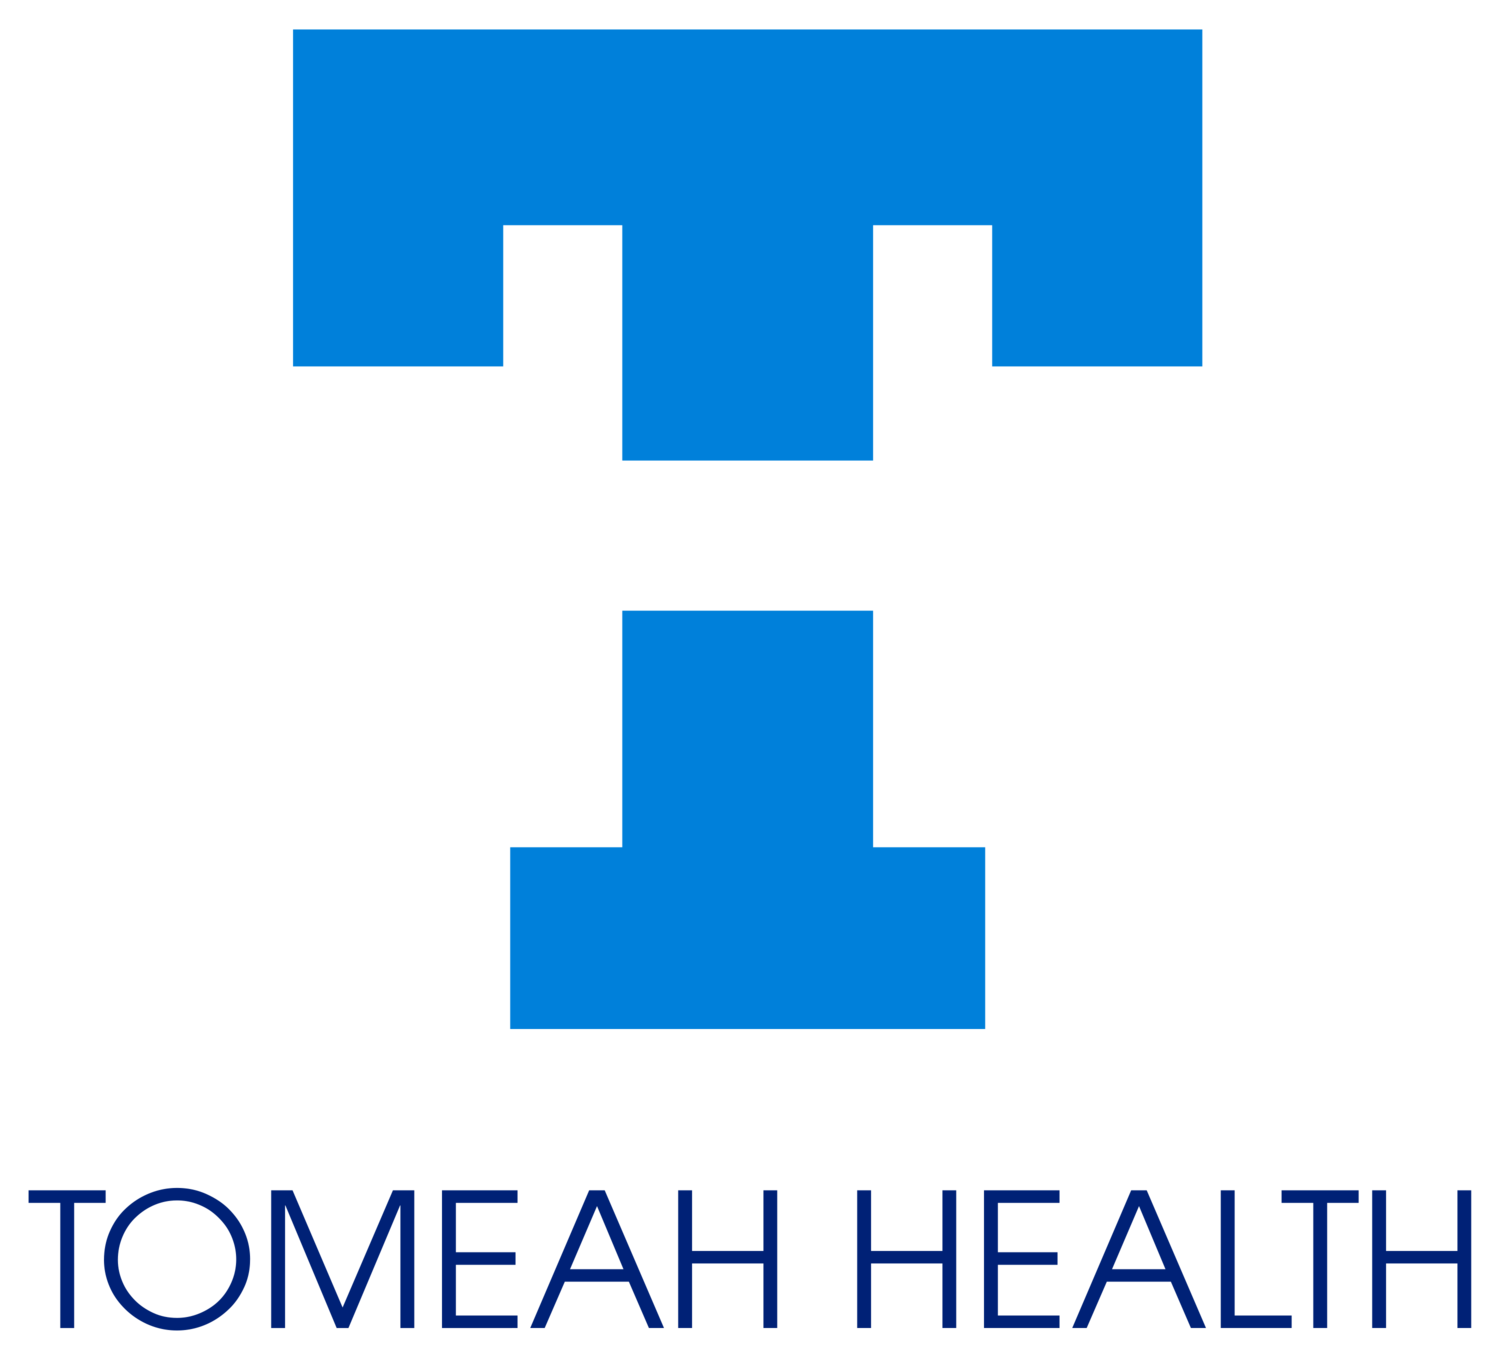 Tomeah Health